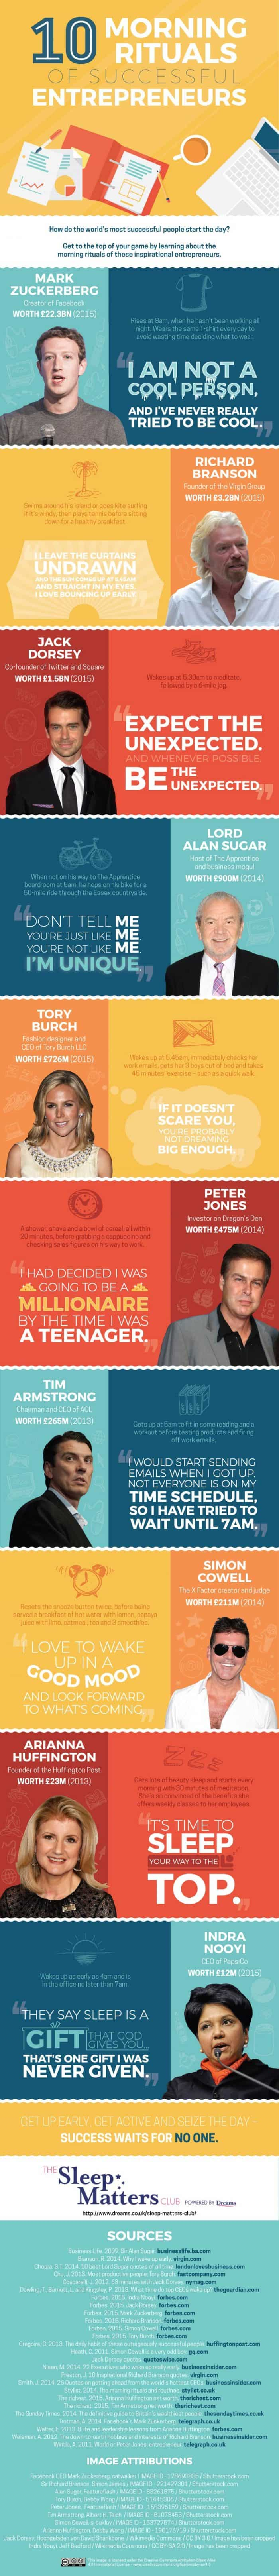 infographic shares the morning rituals and sleep schedules of famous CEOs